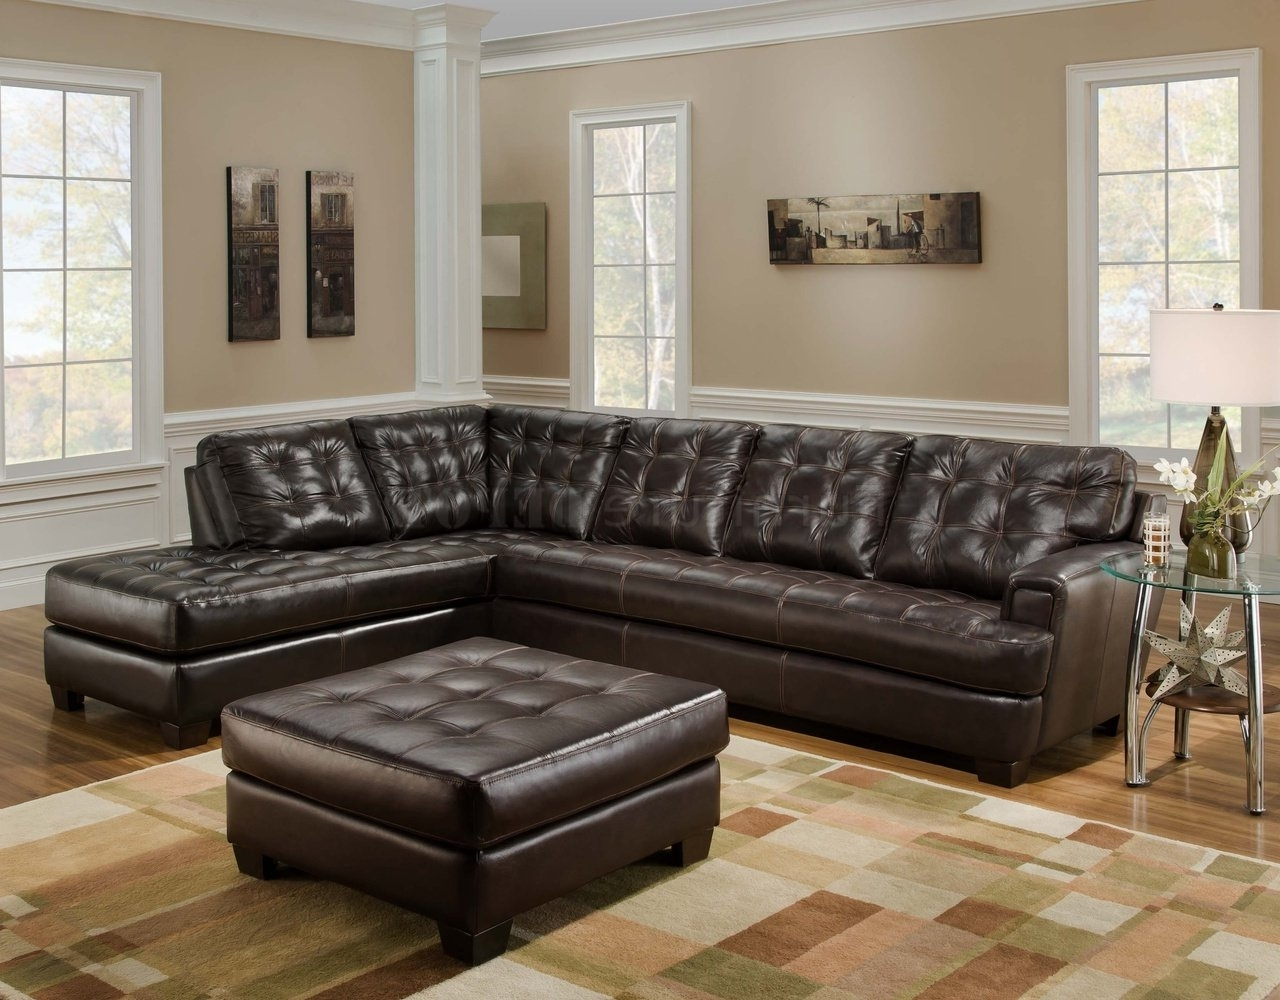 Dark Brown Leather Tufted Sectional Chaise Lounge Sofa With In Best And Newest Leather Sectionals With Ottoman (View 3 of 15)